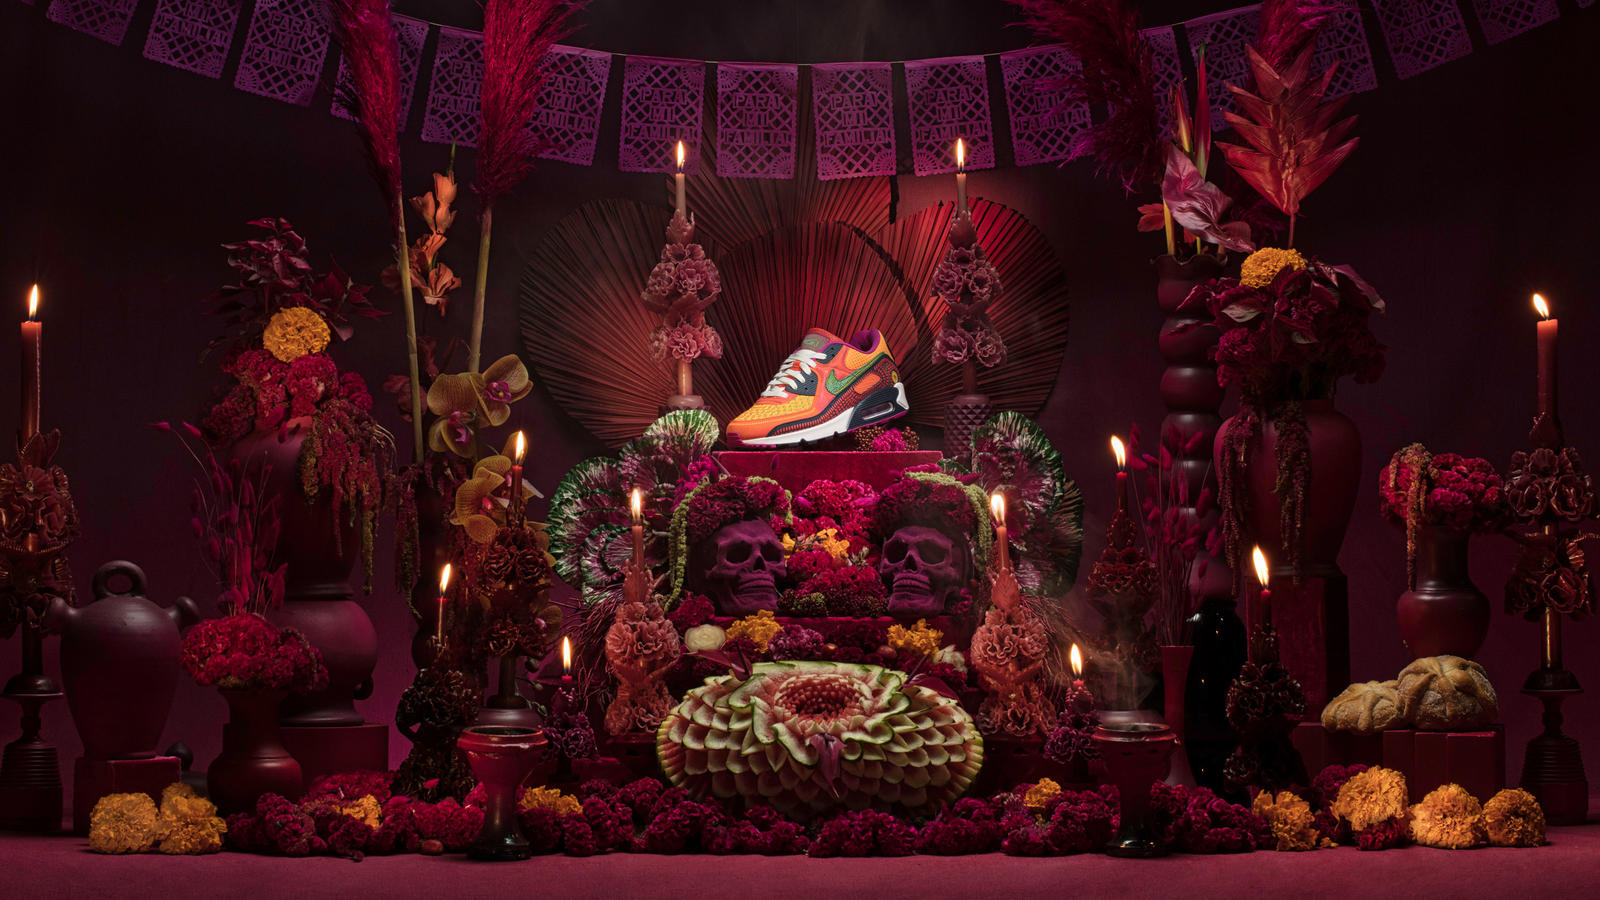 nike 2020 day of the dead collection ナイキ 死者の日 コレクション 2020年 air max 90